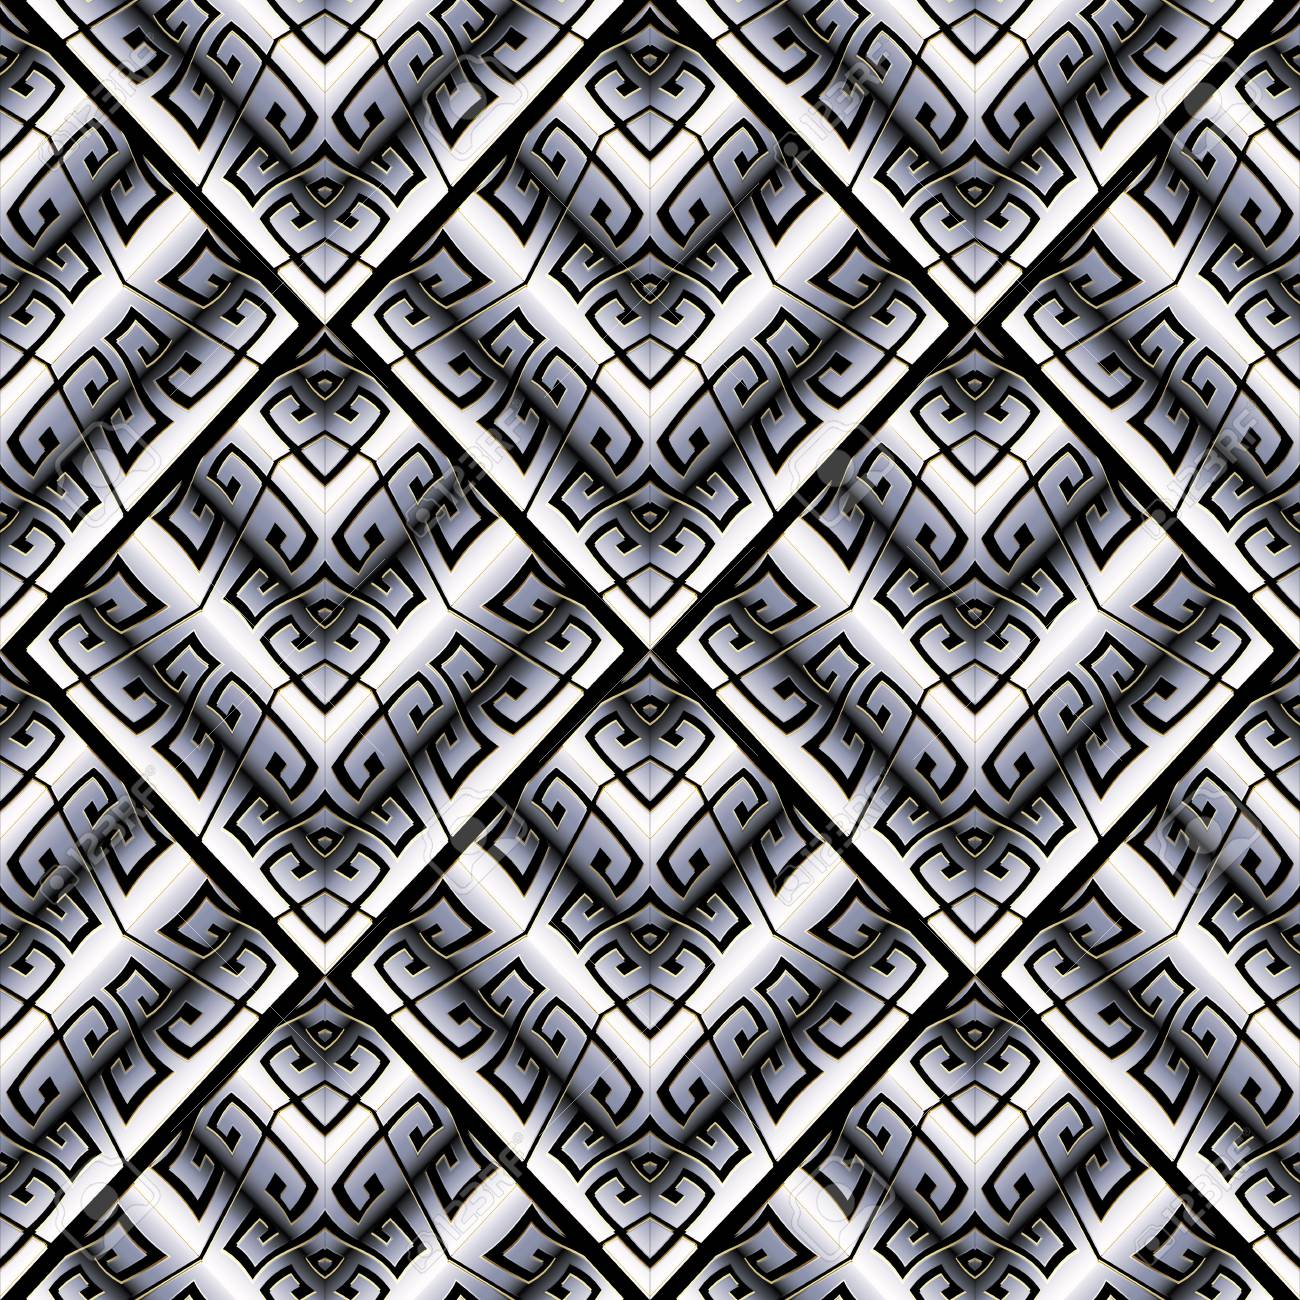 Greek Key 10x15 FT Photo Backdrops,Tile Mosaic Pattern in Blue and White with Antique Meander and Camo Effect Background for Photography Kids Adult Photo Booth Video Shoot Vinyl Studio Props